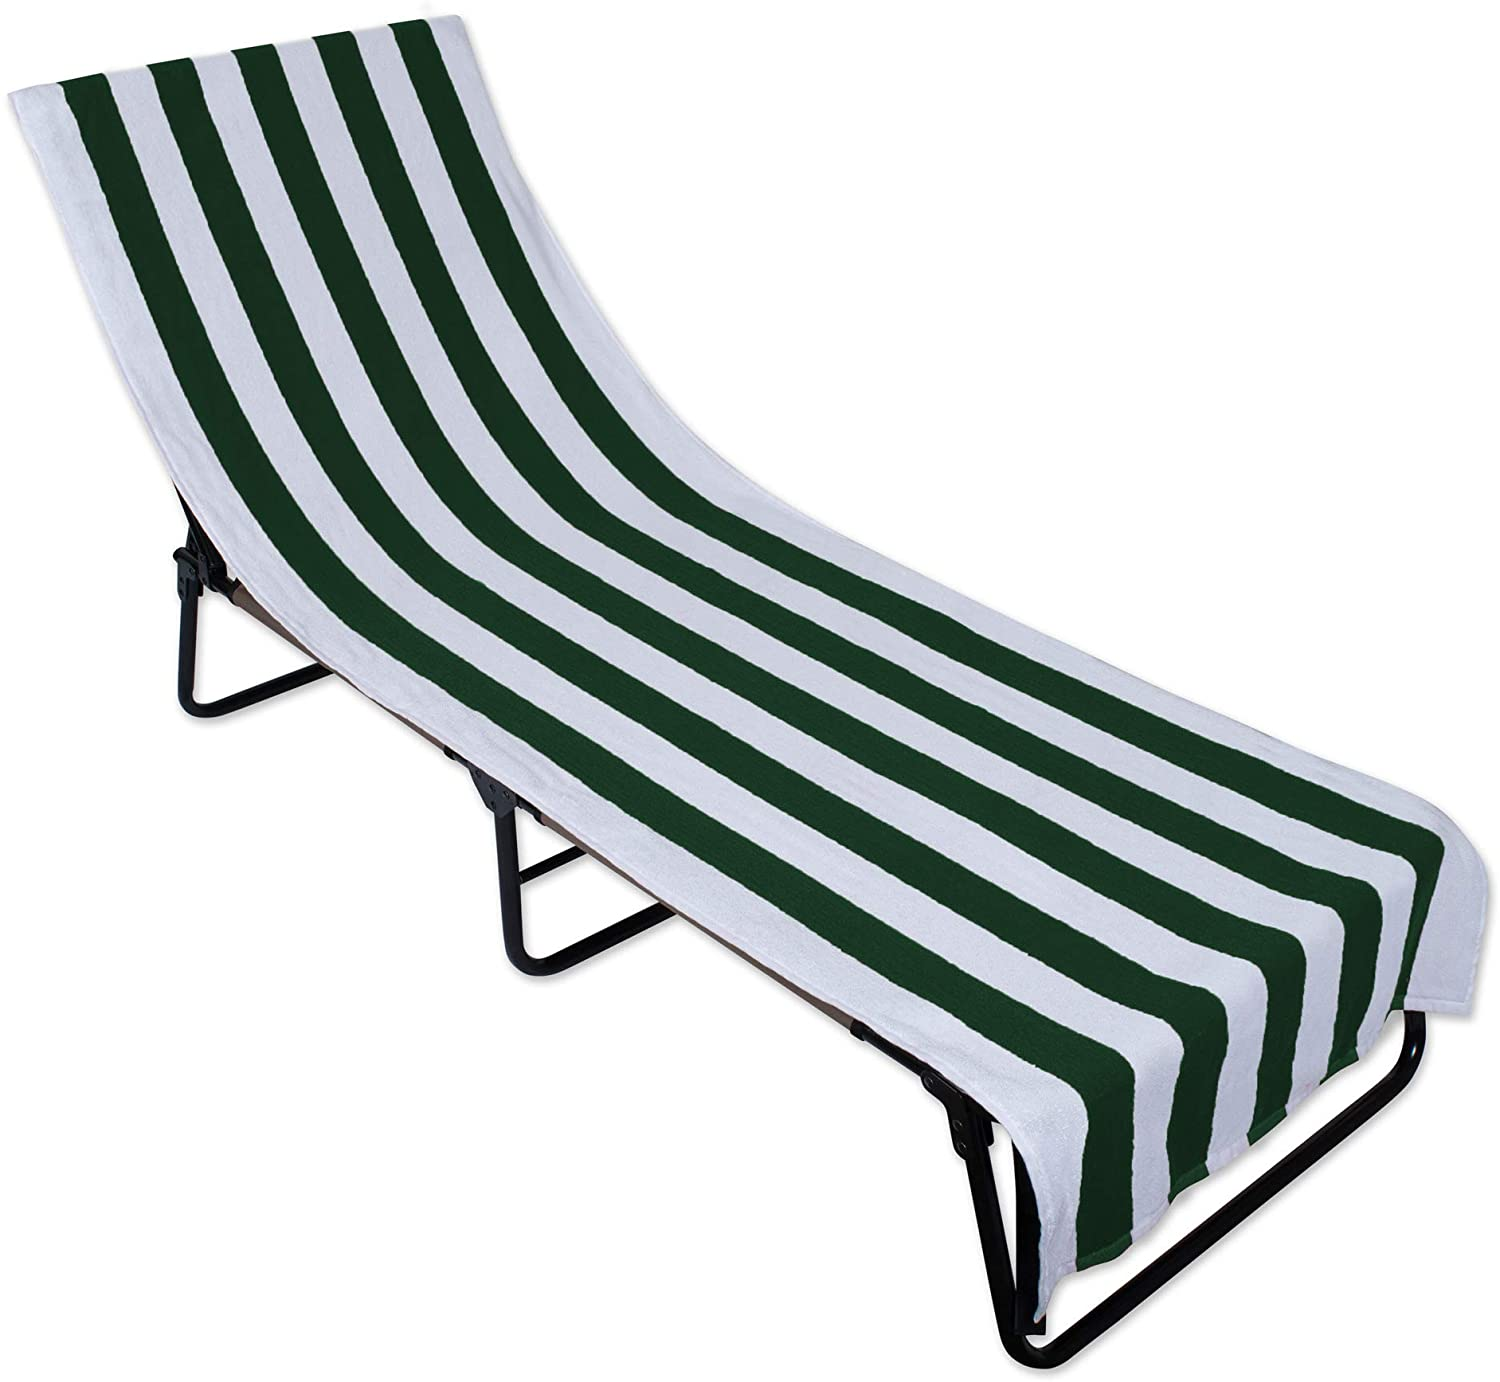 DII Stripe Beach Lounge Chair Towel with Fitted Top Pocket, 26x82, Hunter Green